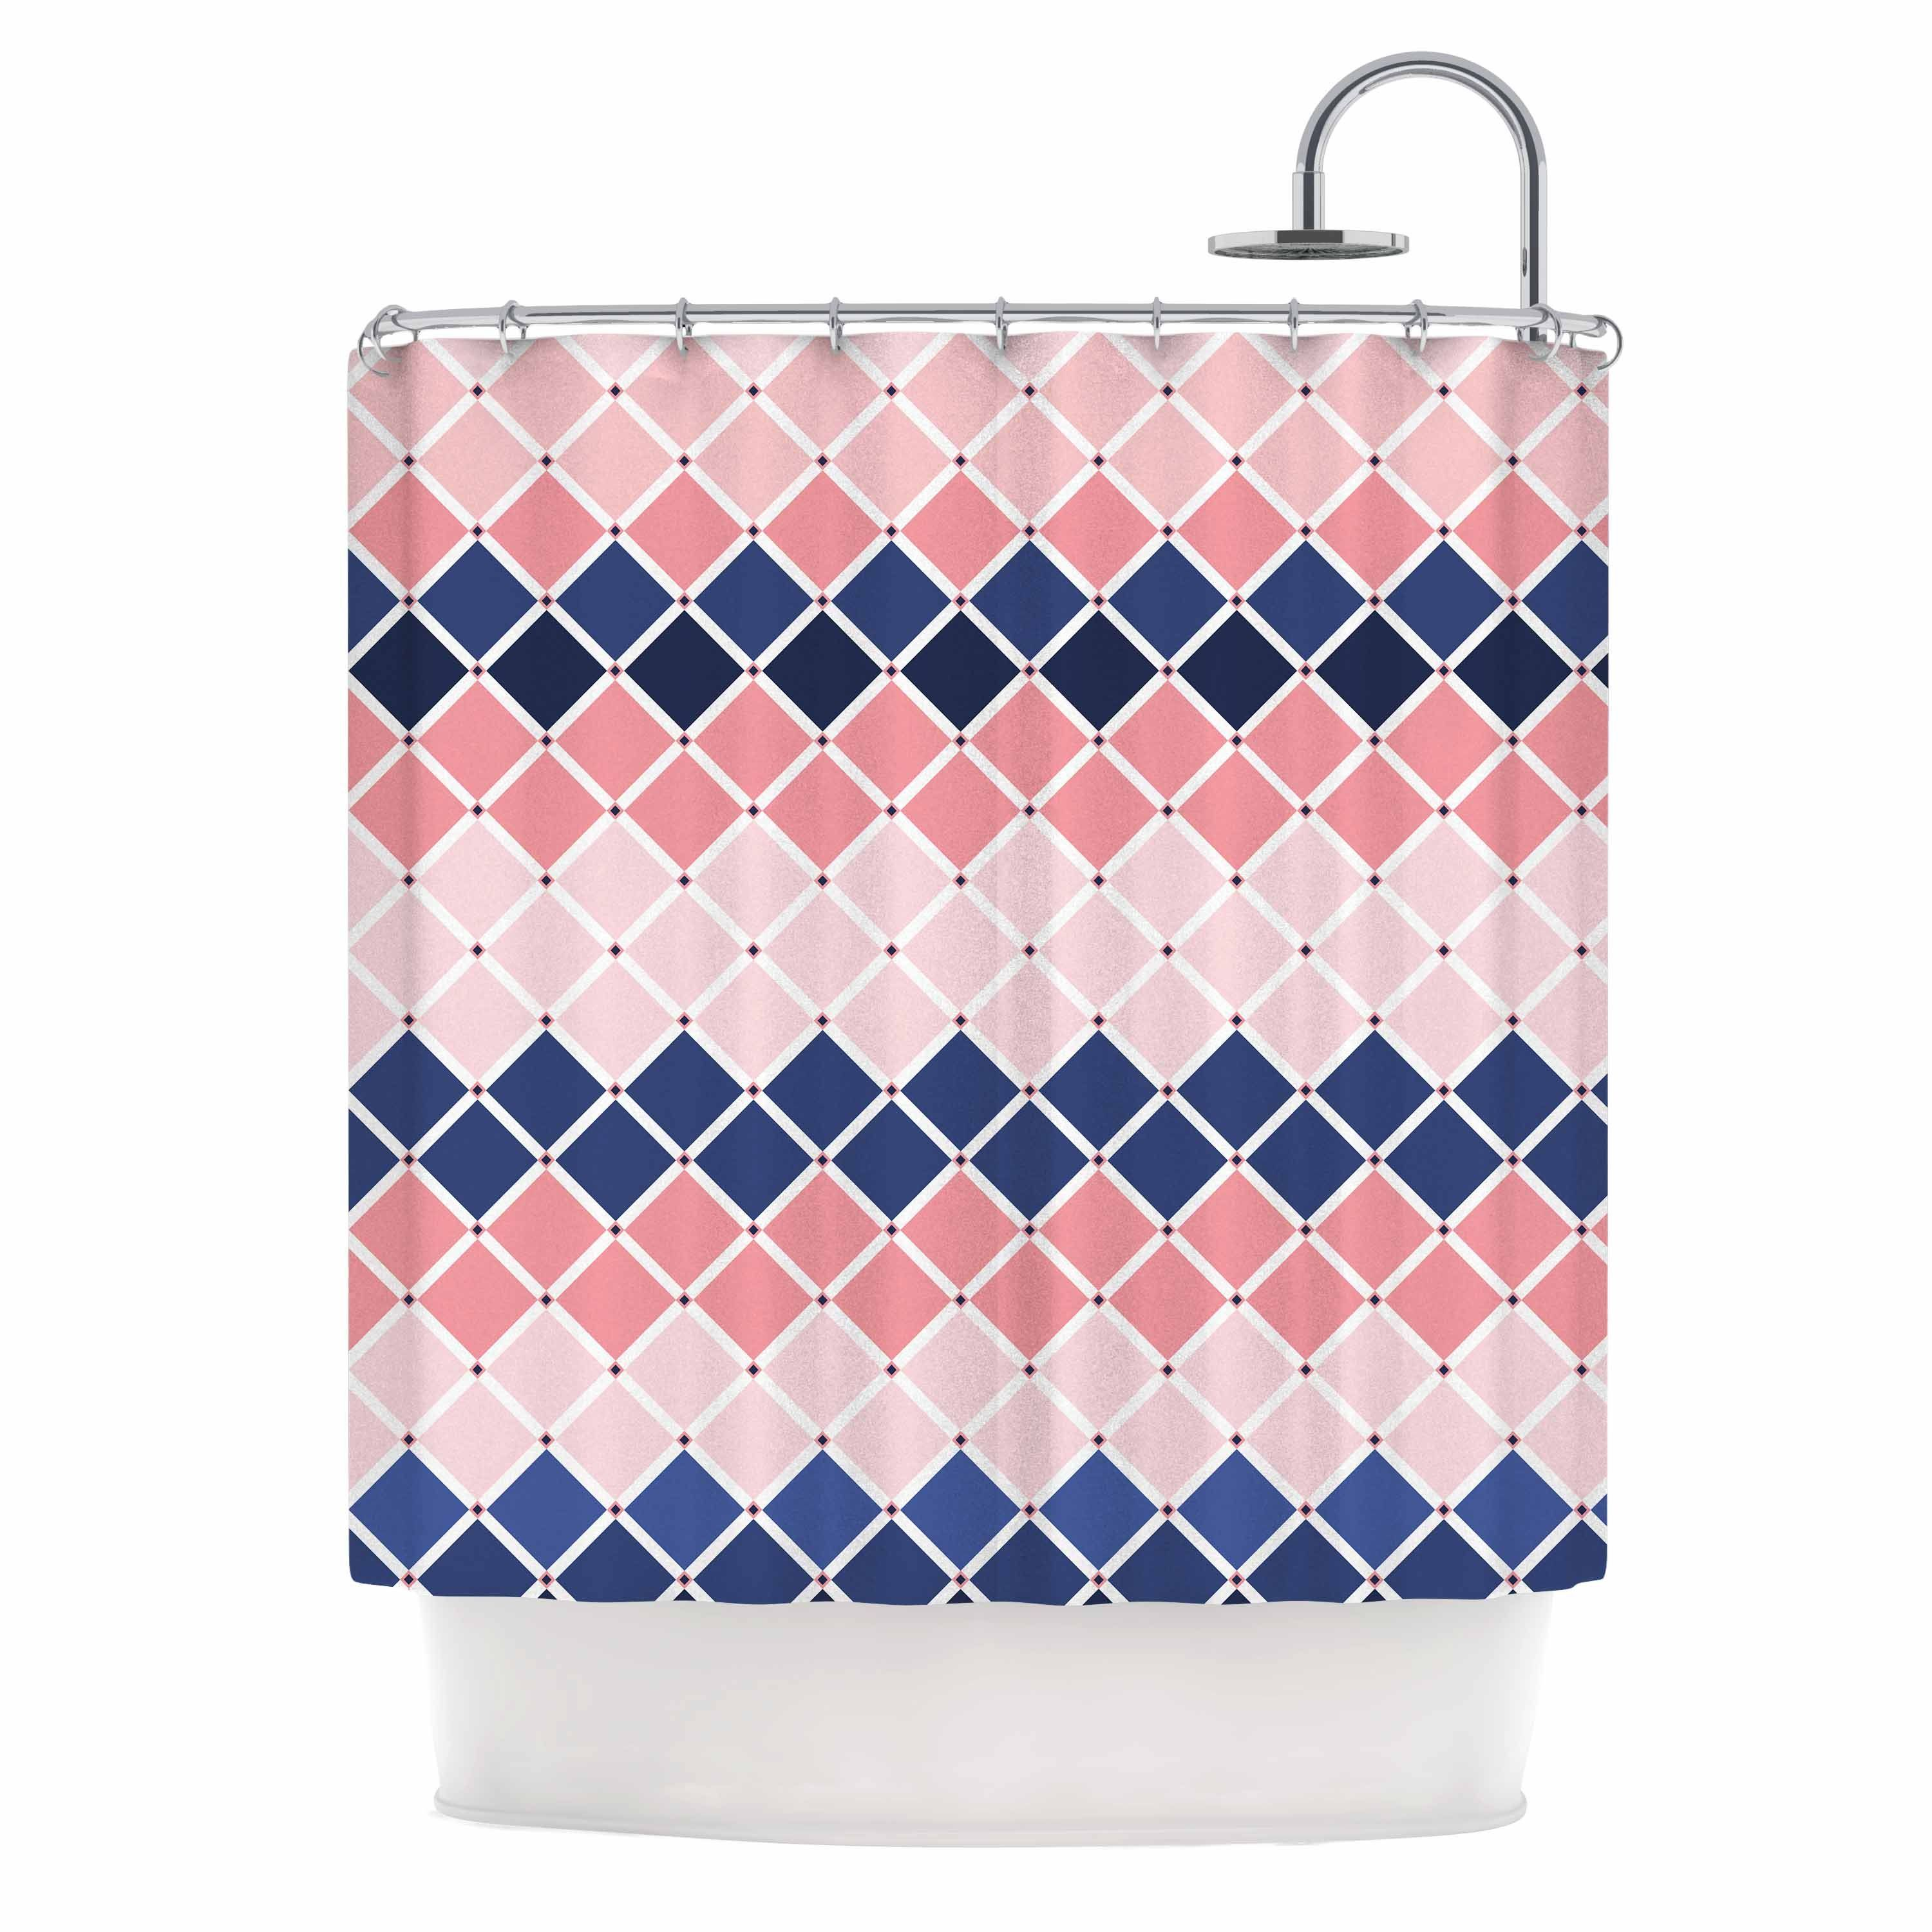 shower curtains bloom victoria inhouse chelsea kess curtain itm